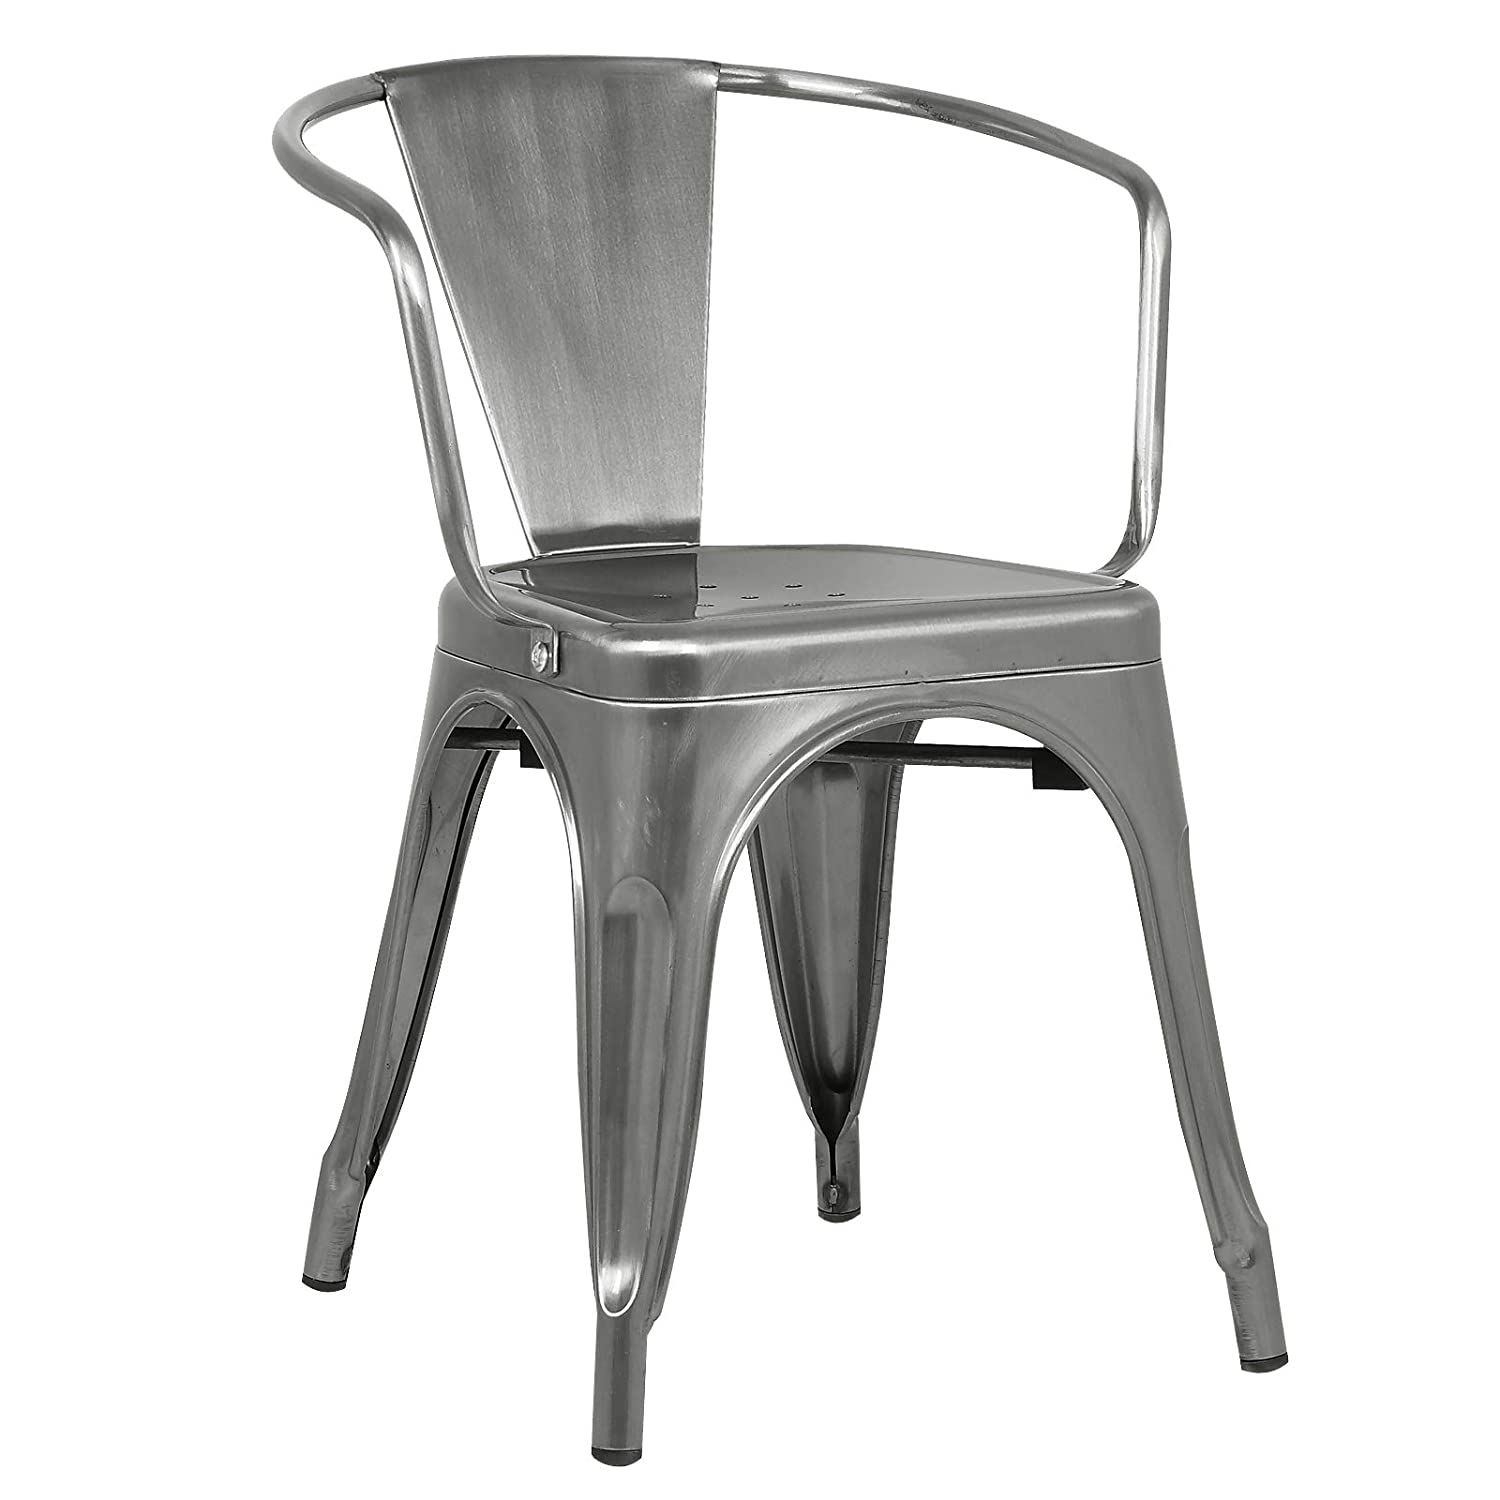 Poly and Bark Trattoria Arm Chair in Polished Gunmetal